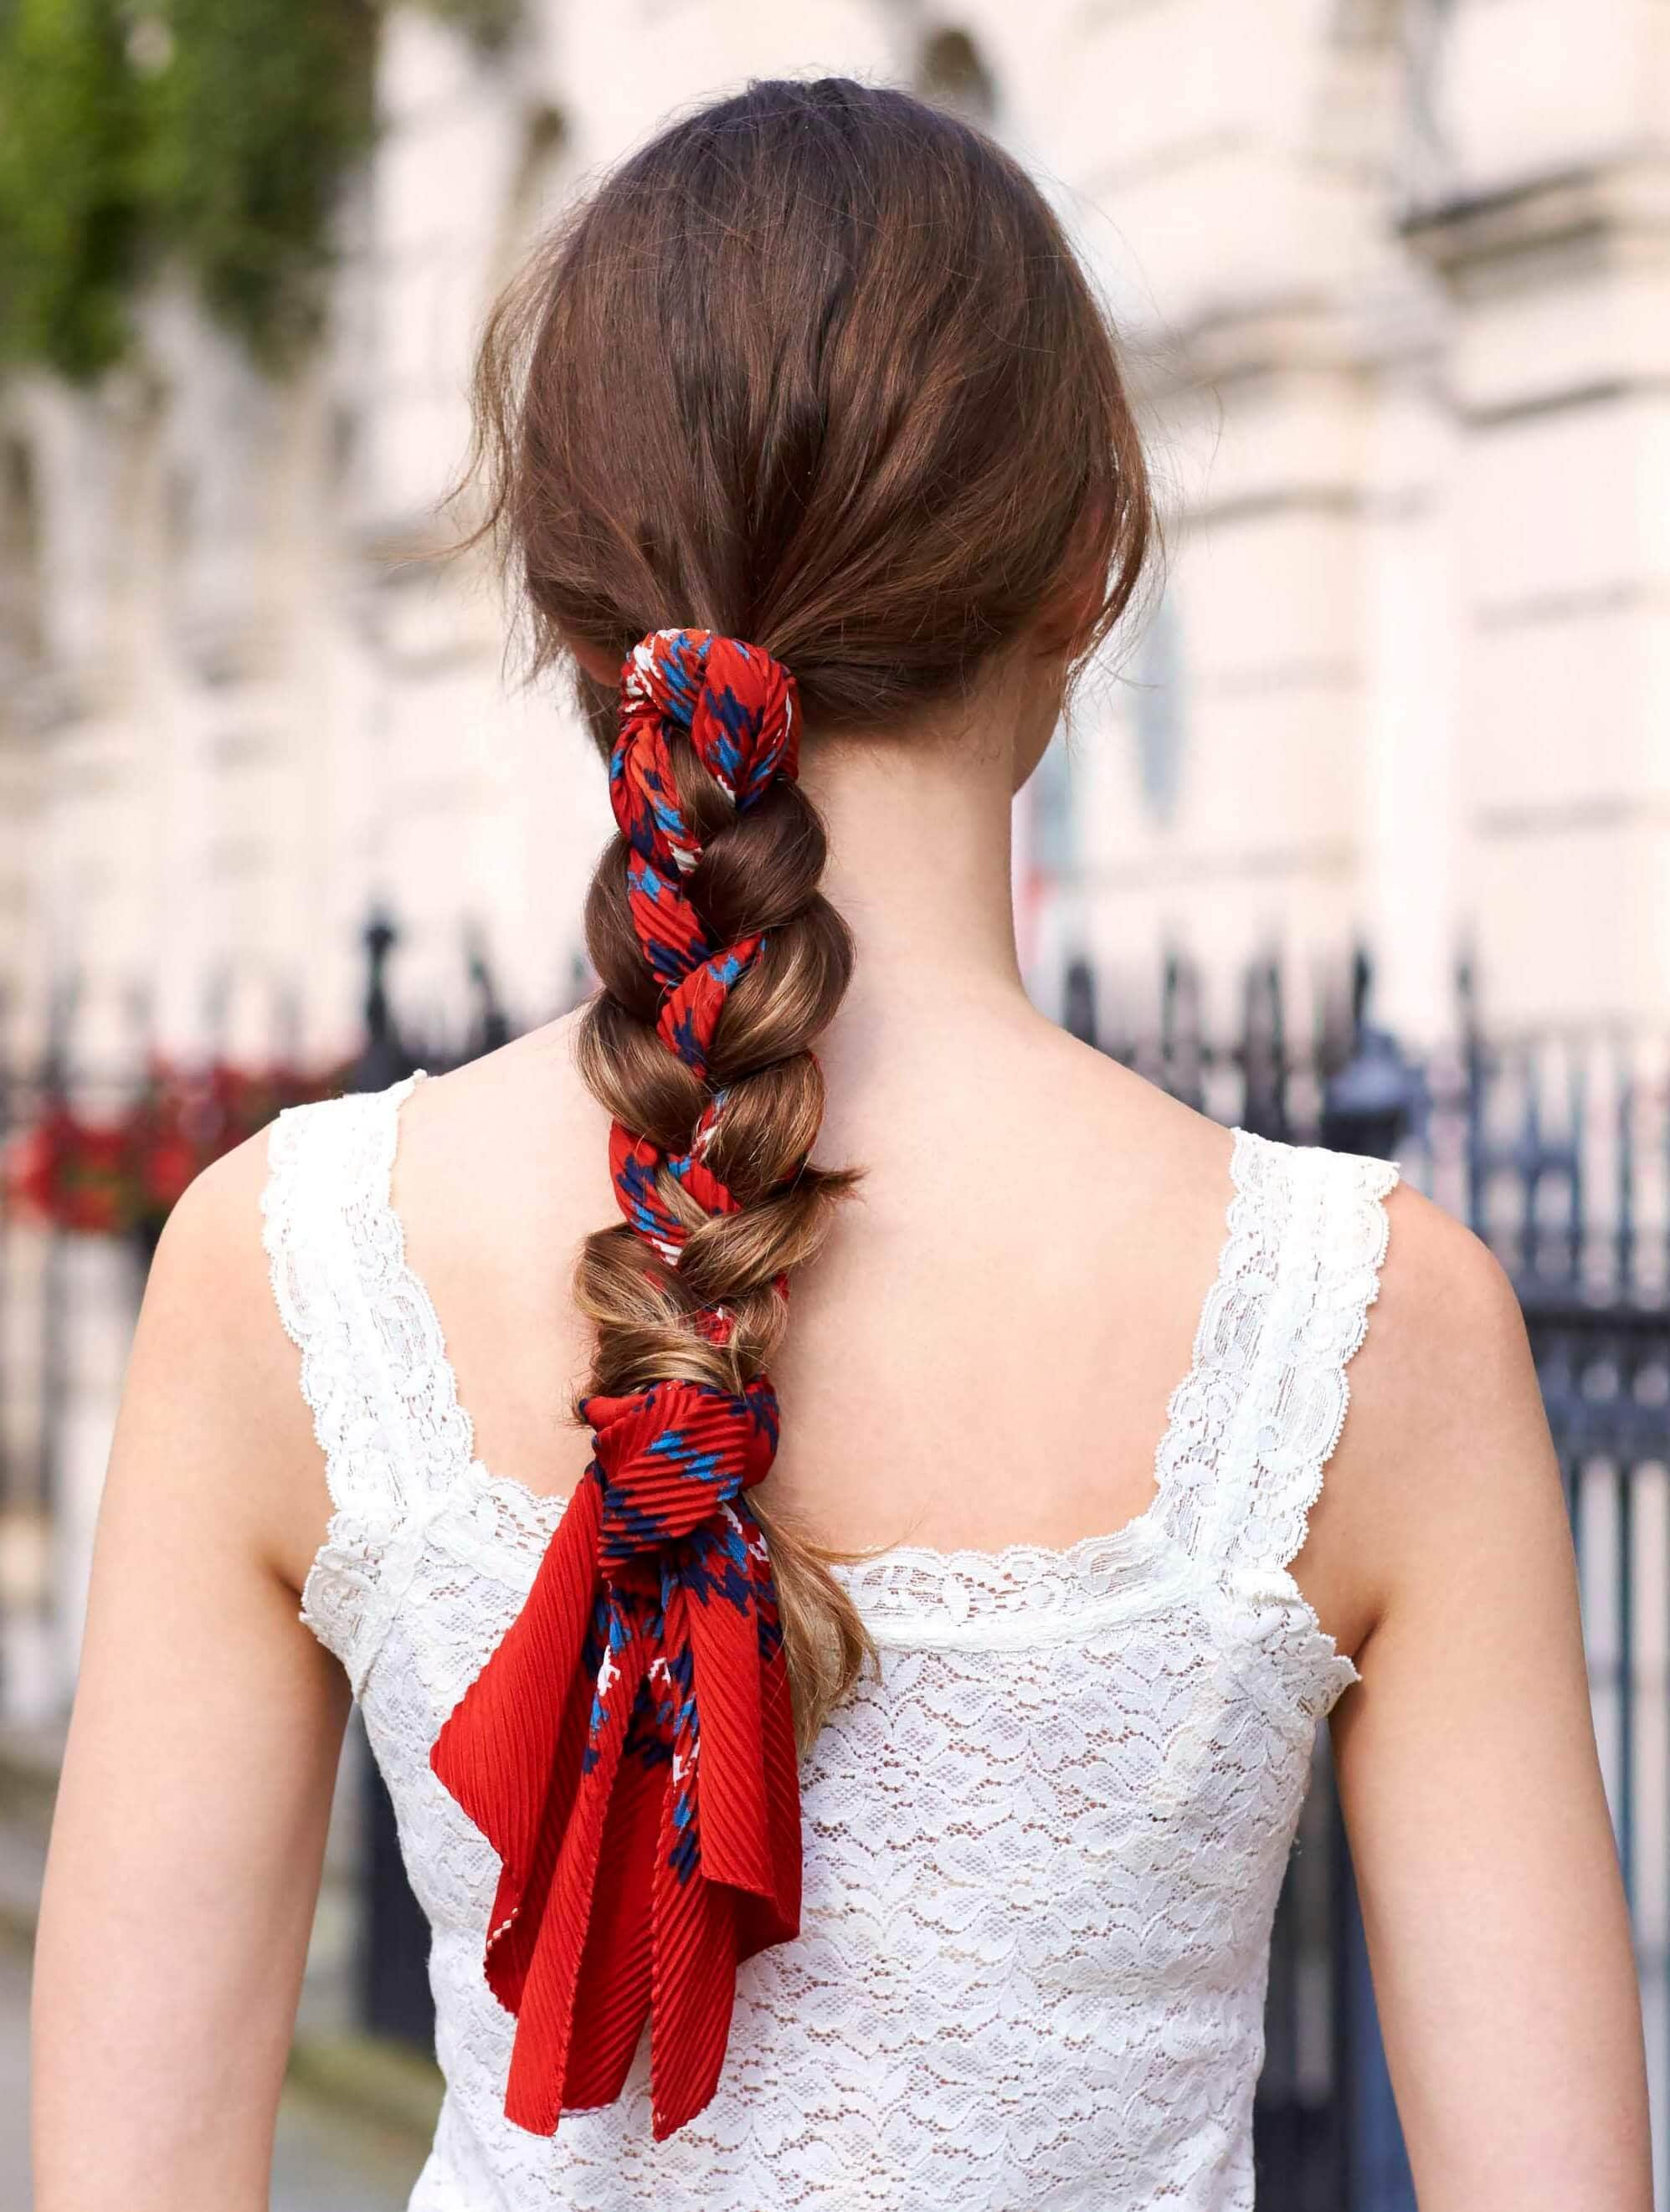 braid hairstyles 2016 with accessories